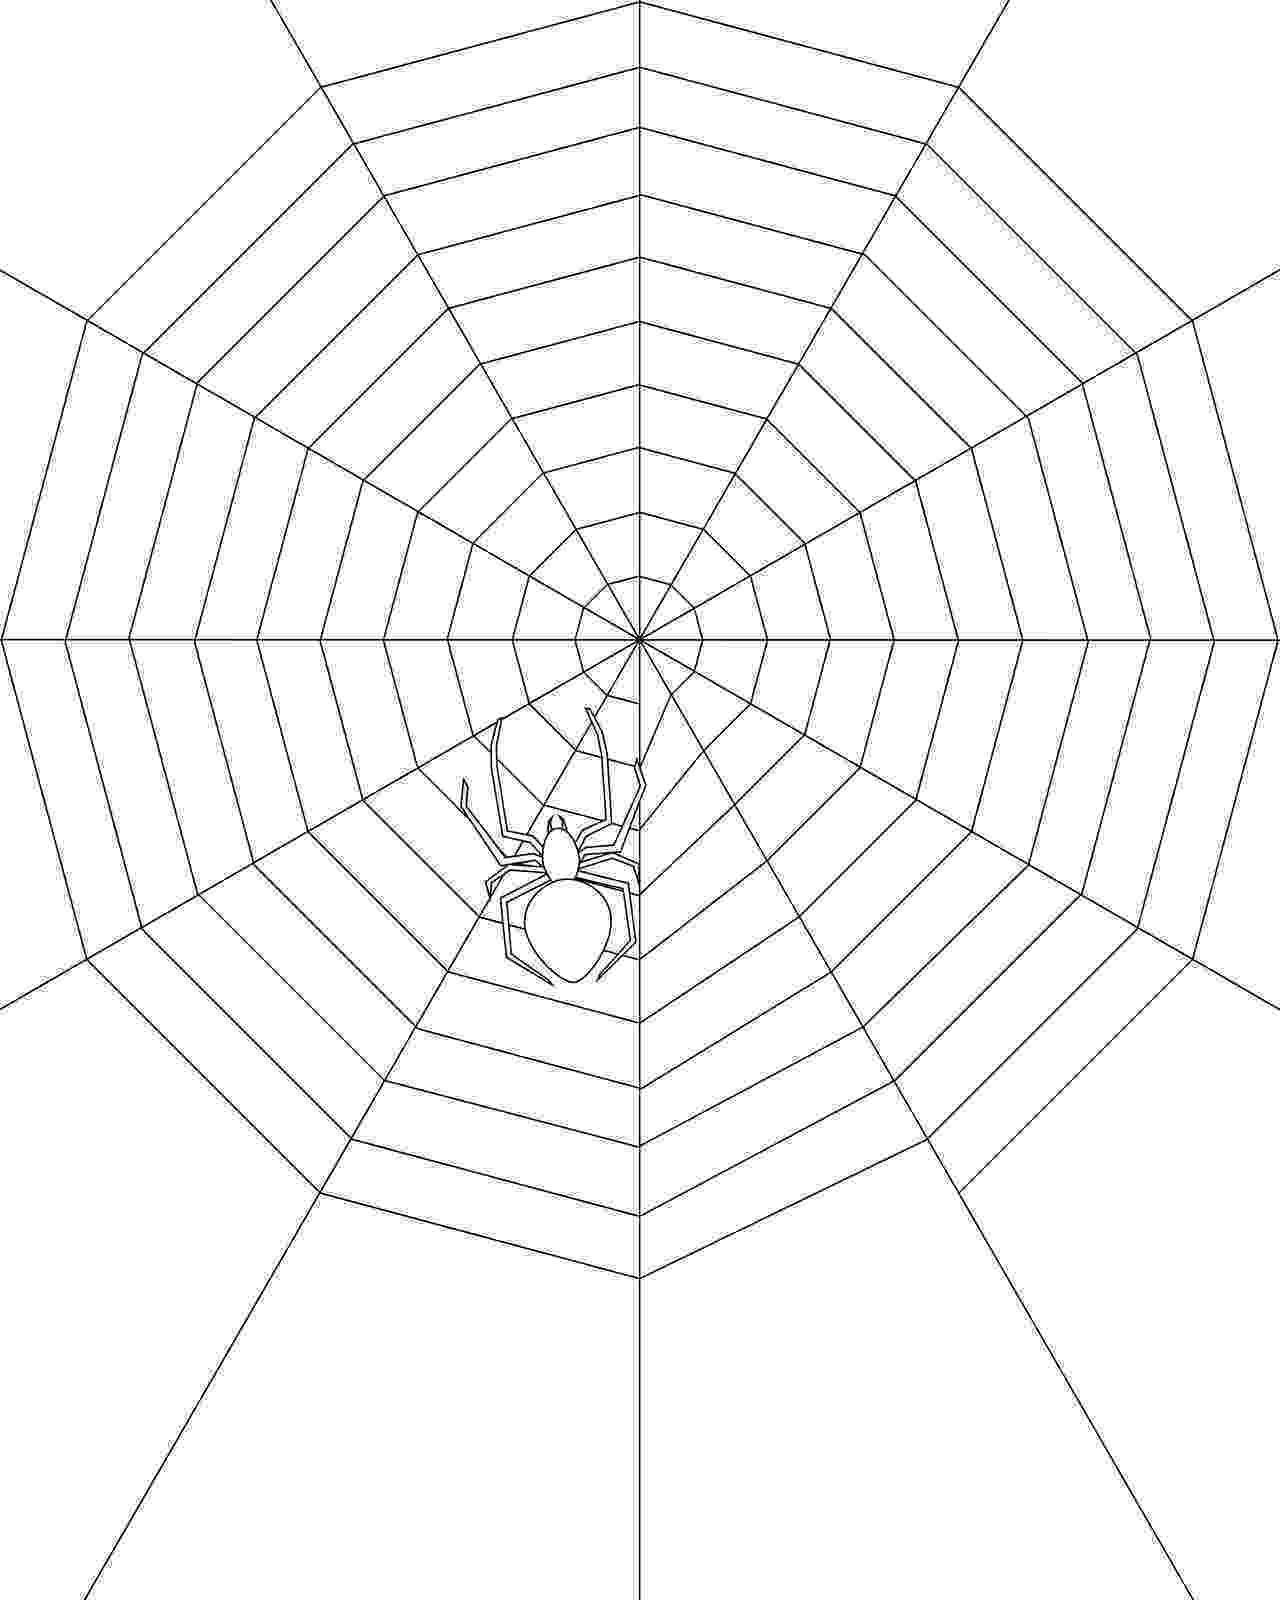 spider web coloring page free printable spider web coloring pages for kids page coloring spider web